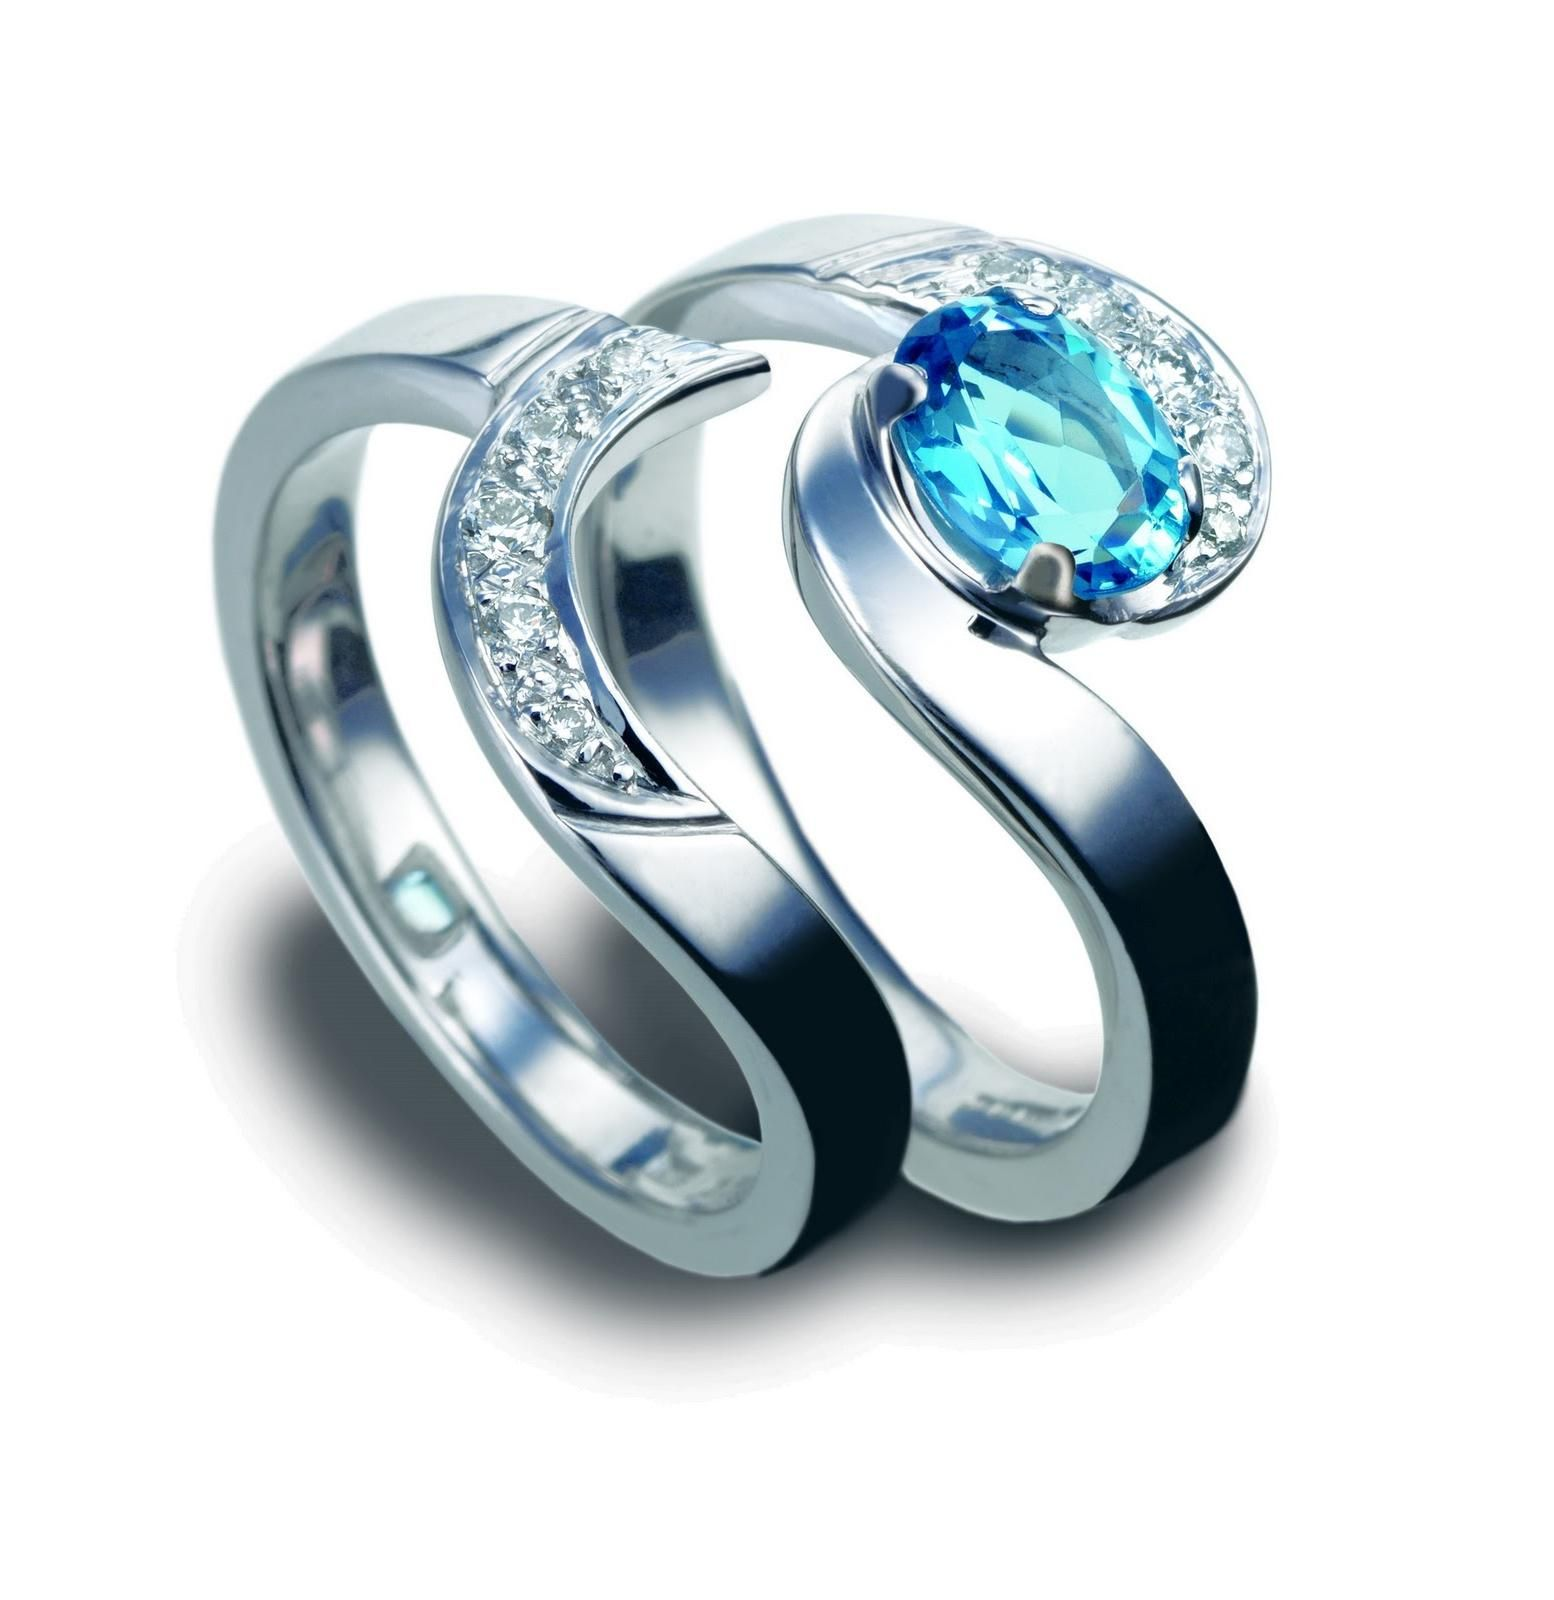 diamond samuel jewellery gold l ocean rings wedding number webstore ring white product twist style inspired eternity h